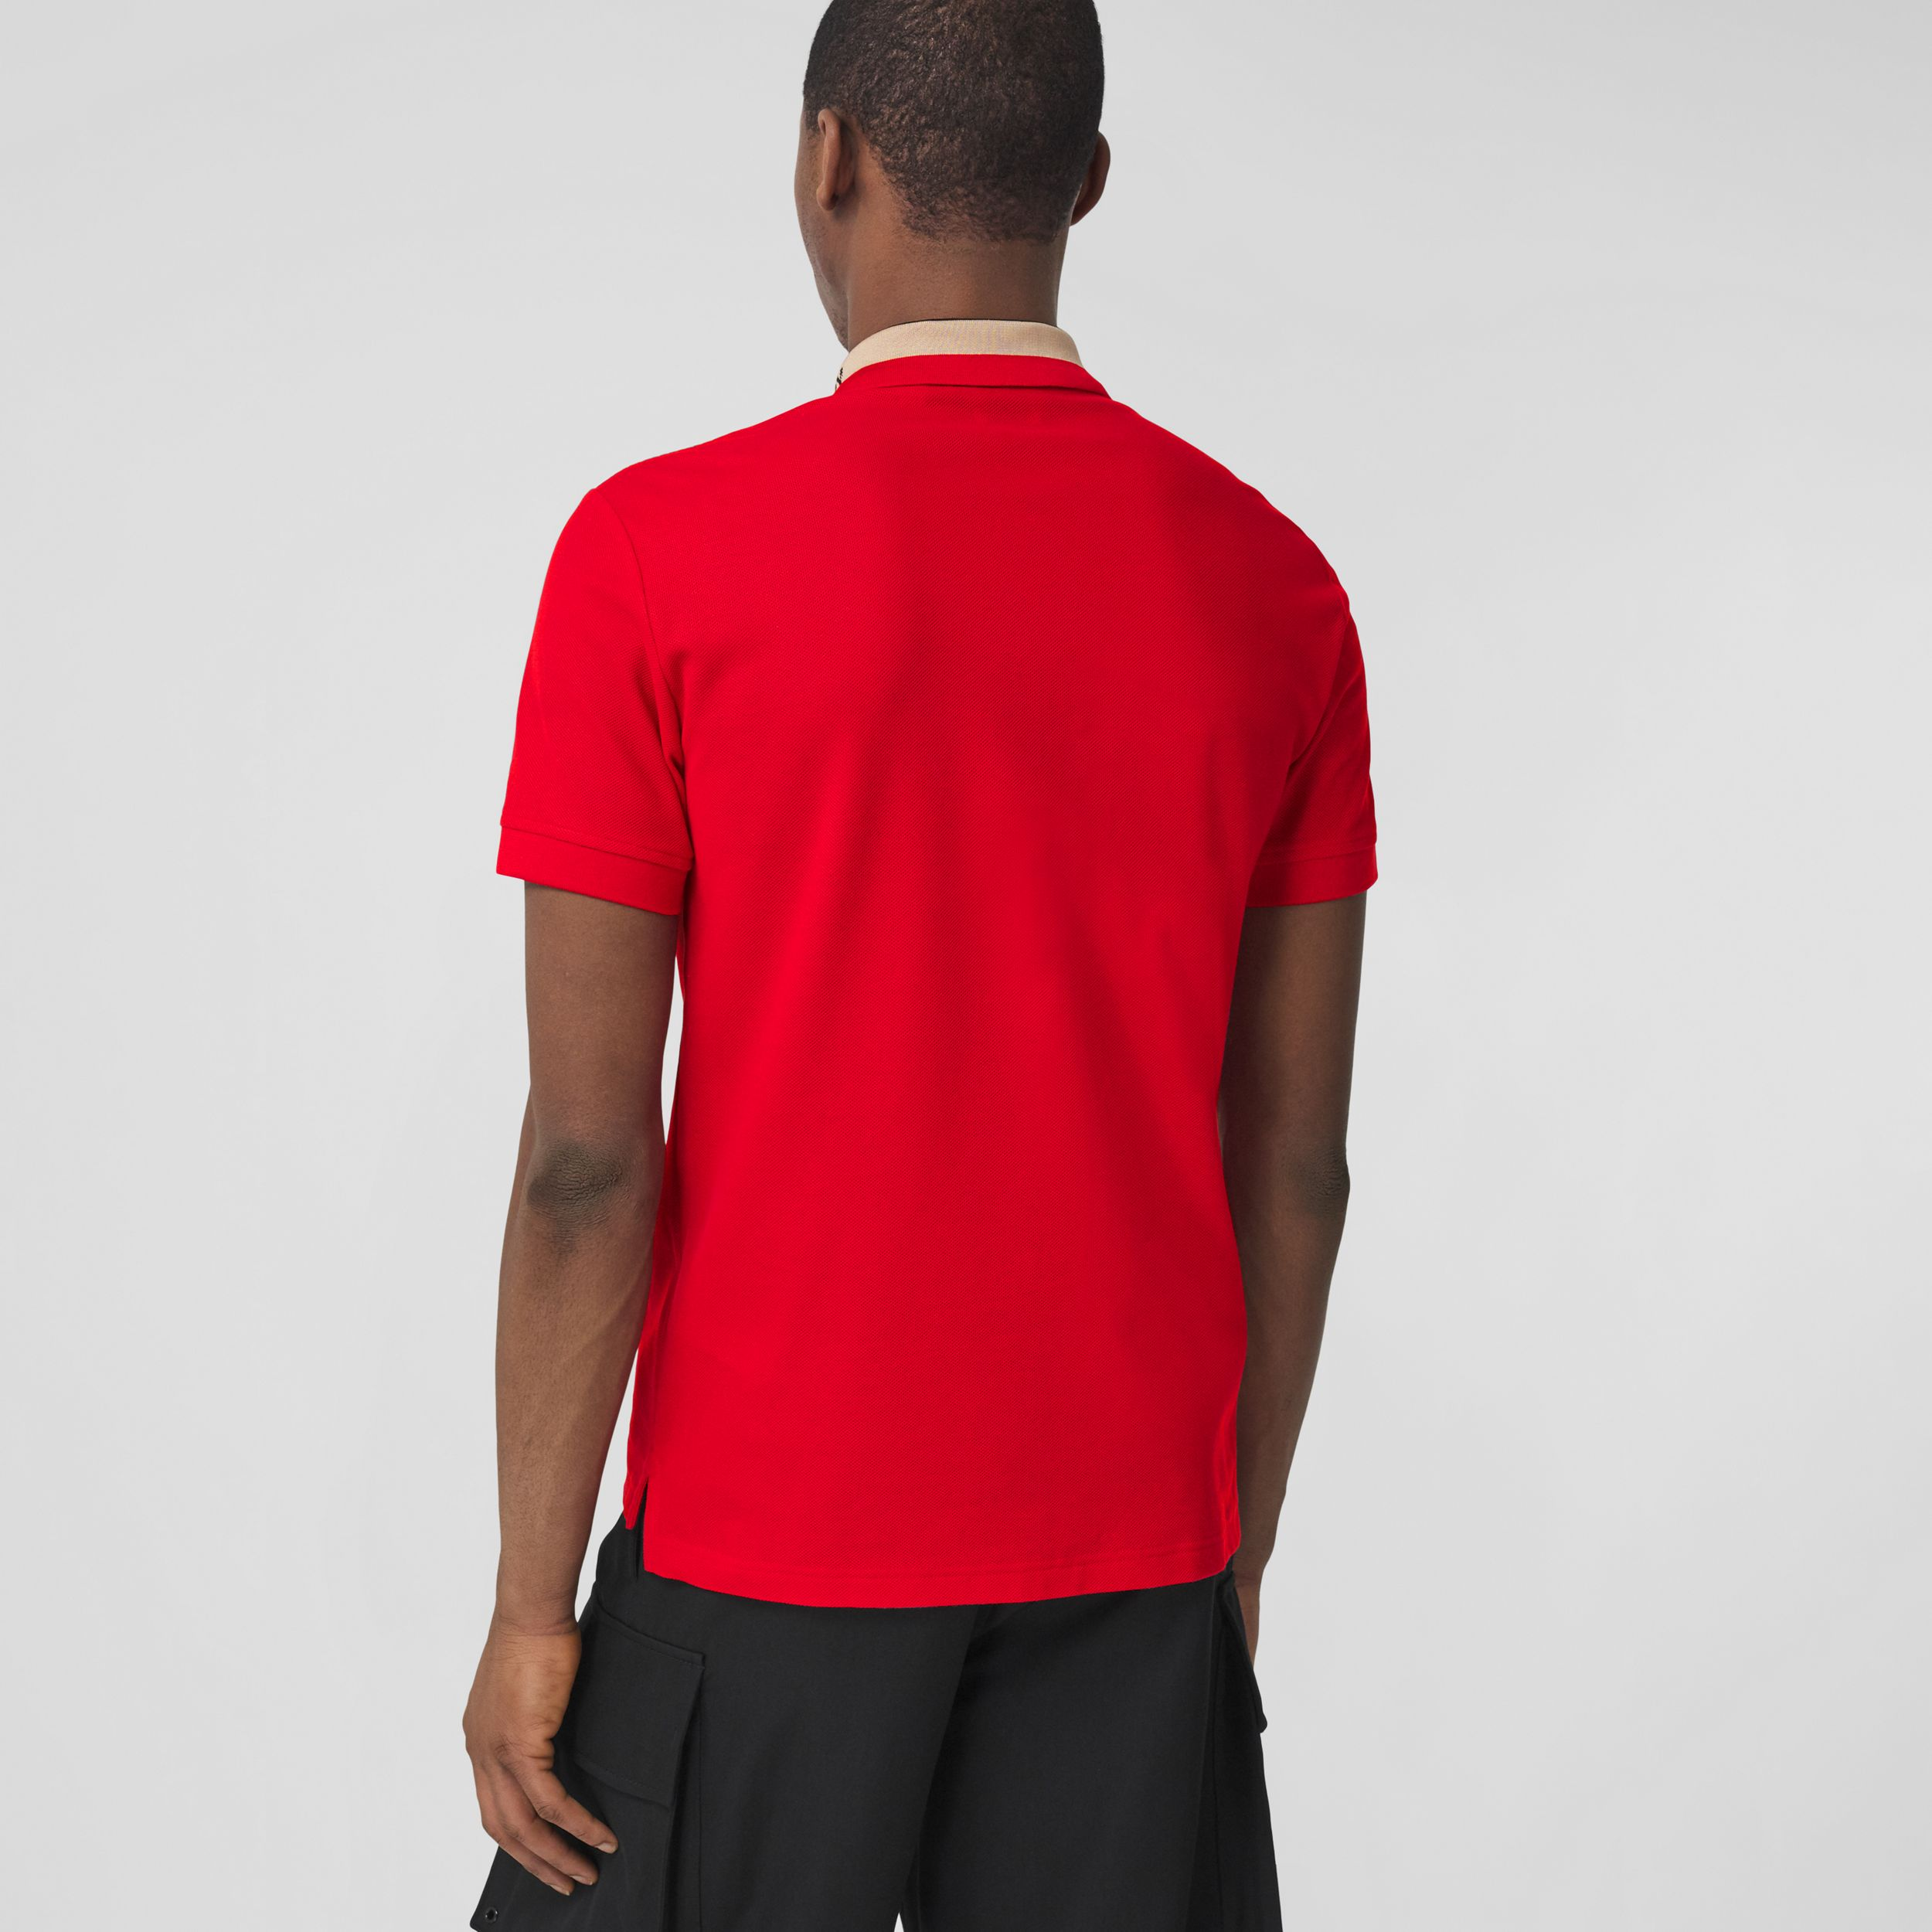 Logo Detail Cotton Piqué Polo Shirt in Bright Red - Men | Burberry - 3